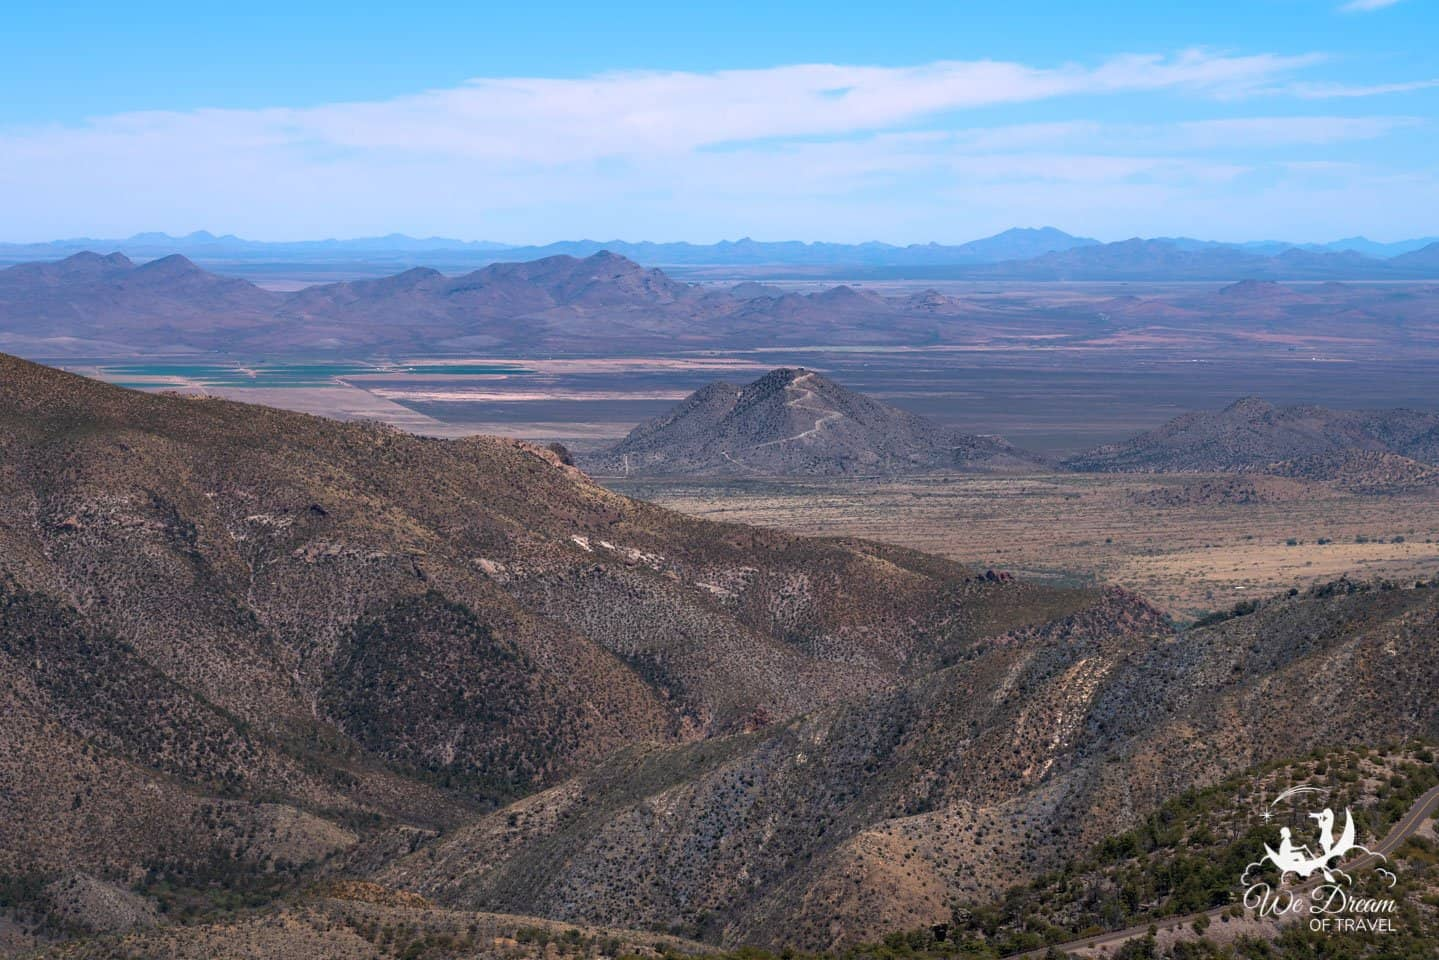 Enjoy the sweeping, 360 degree views of Chiricahua from the Sugarloaf Mountain Trail.